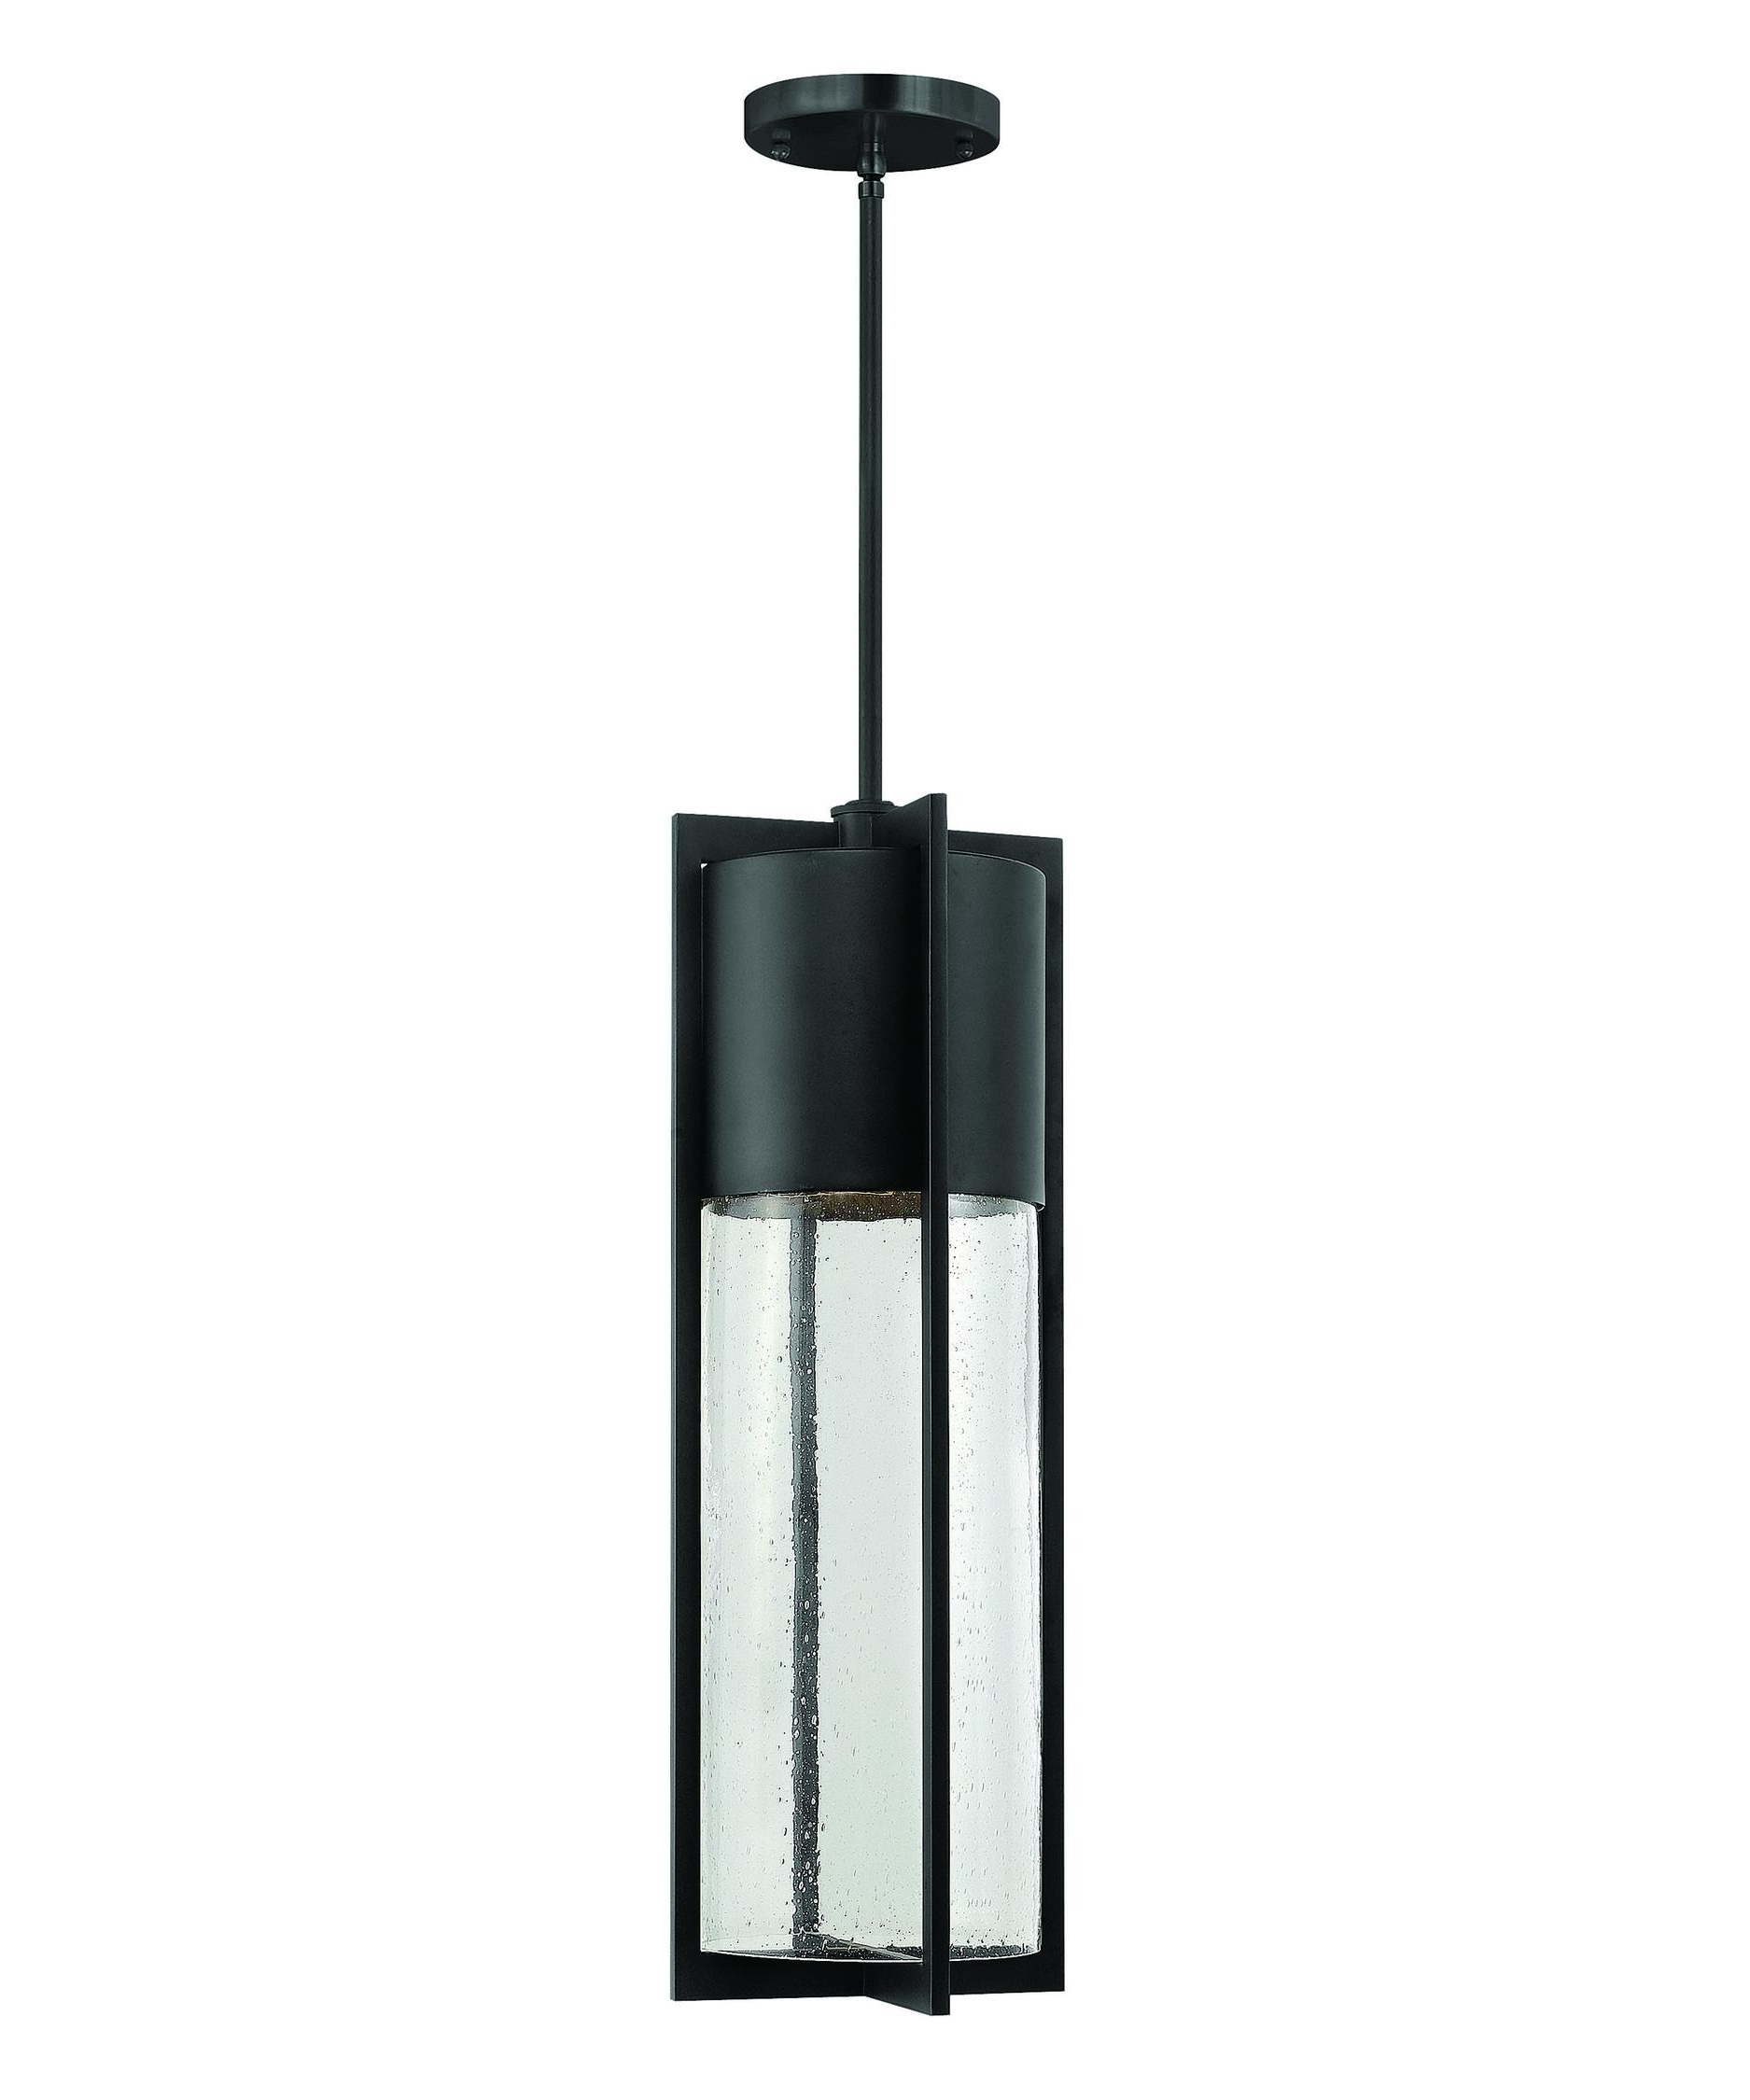 Hinkley Lighting 1328 Shelter 8 Inch Wide 1 Light Outdoor Hanging With Well Known Modern Outdoor Hinkley Lighting (View 4 of 20)